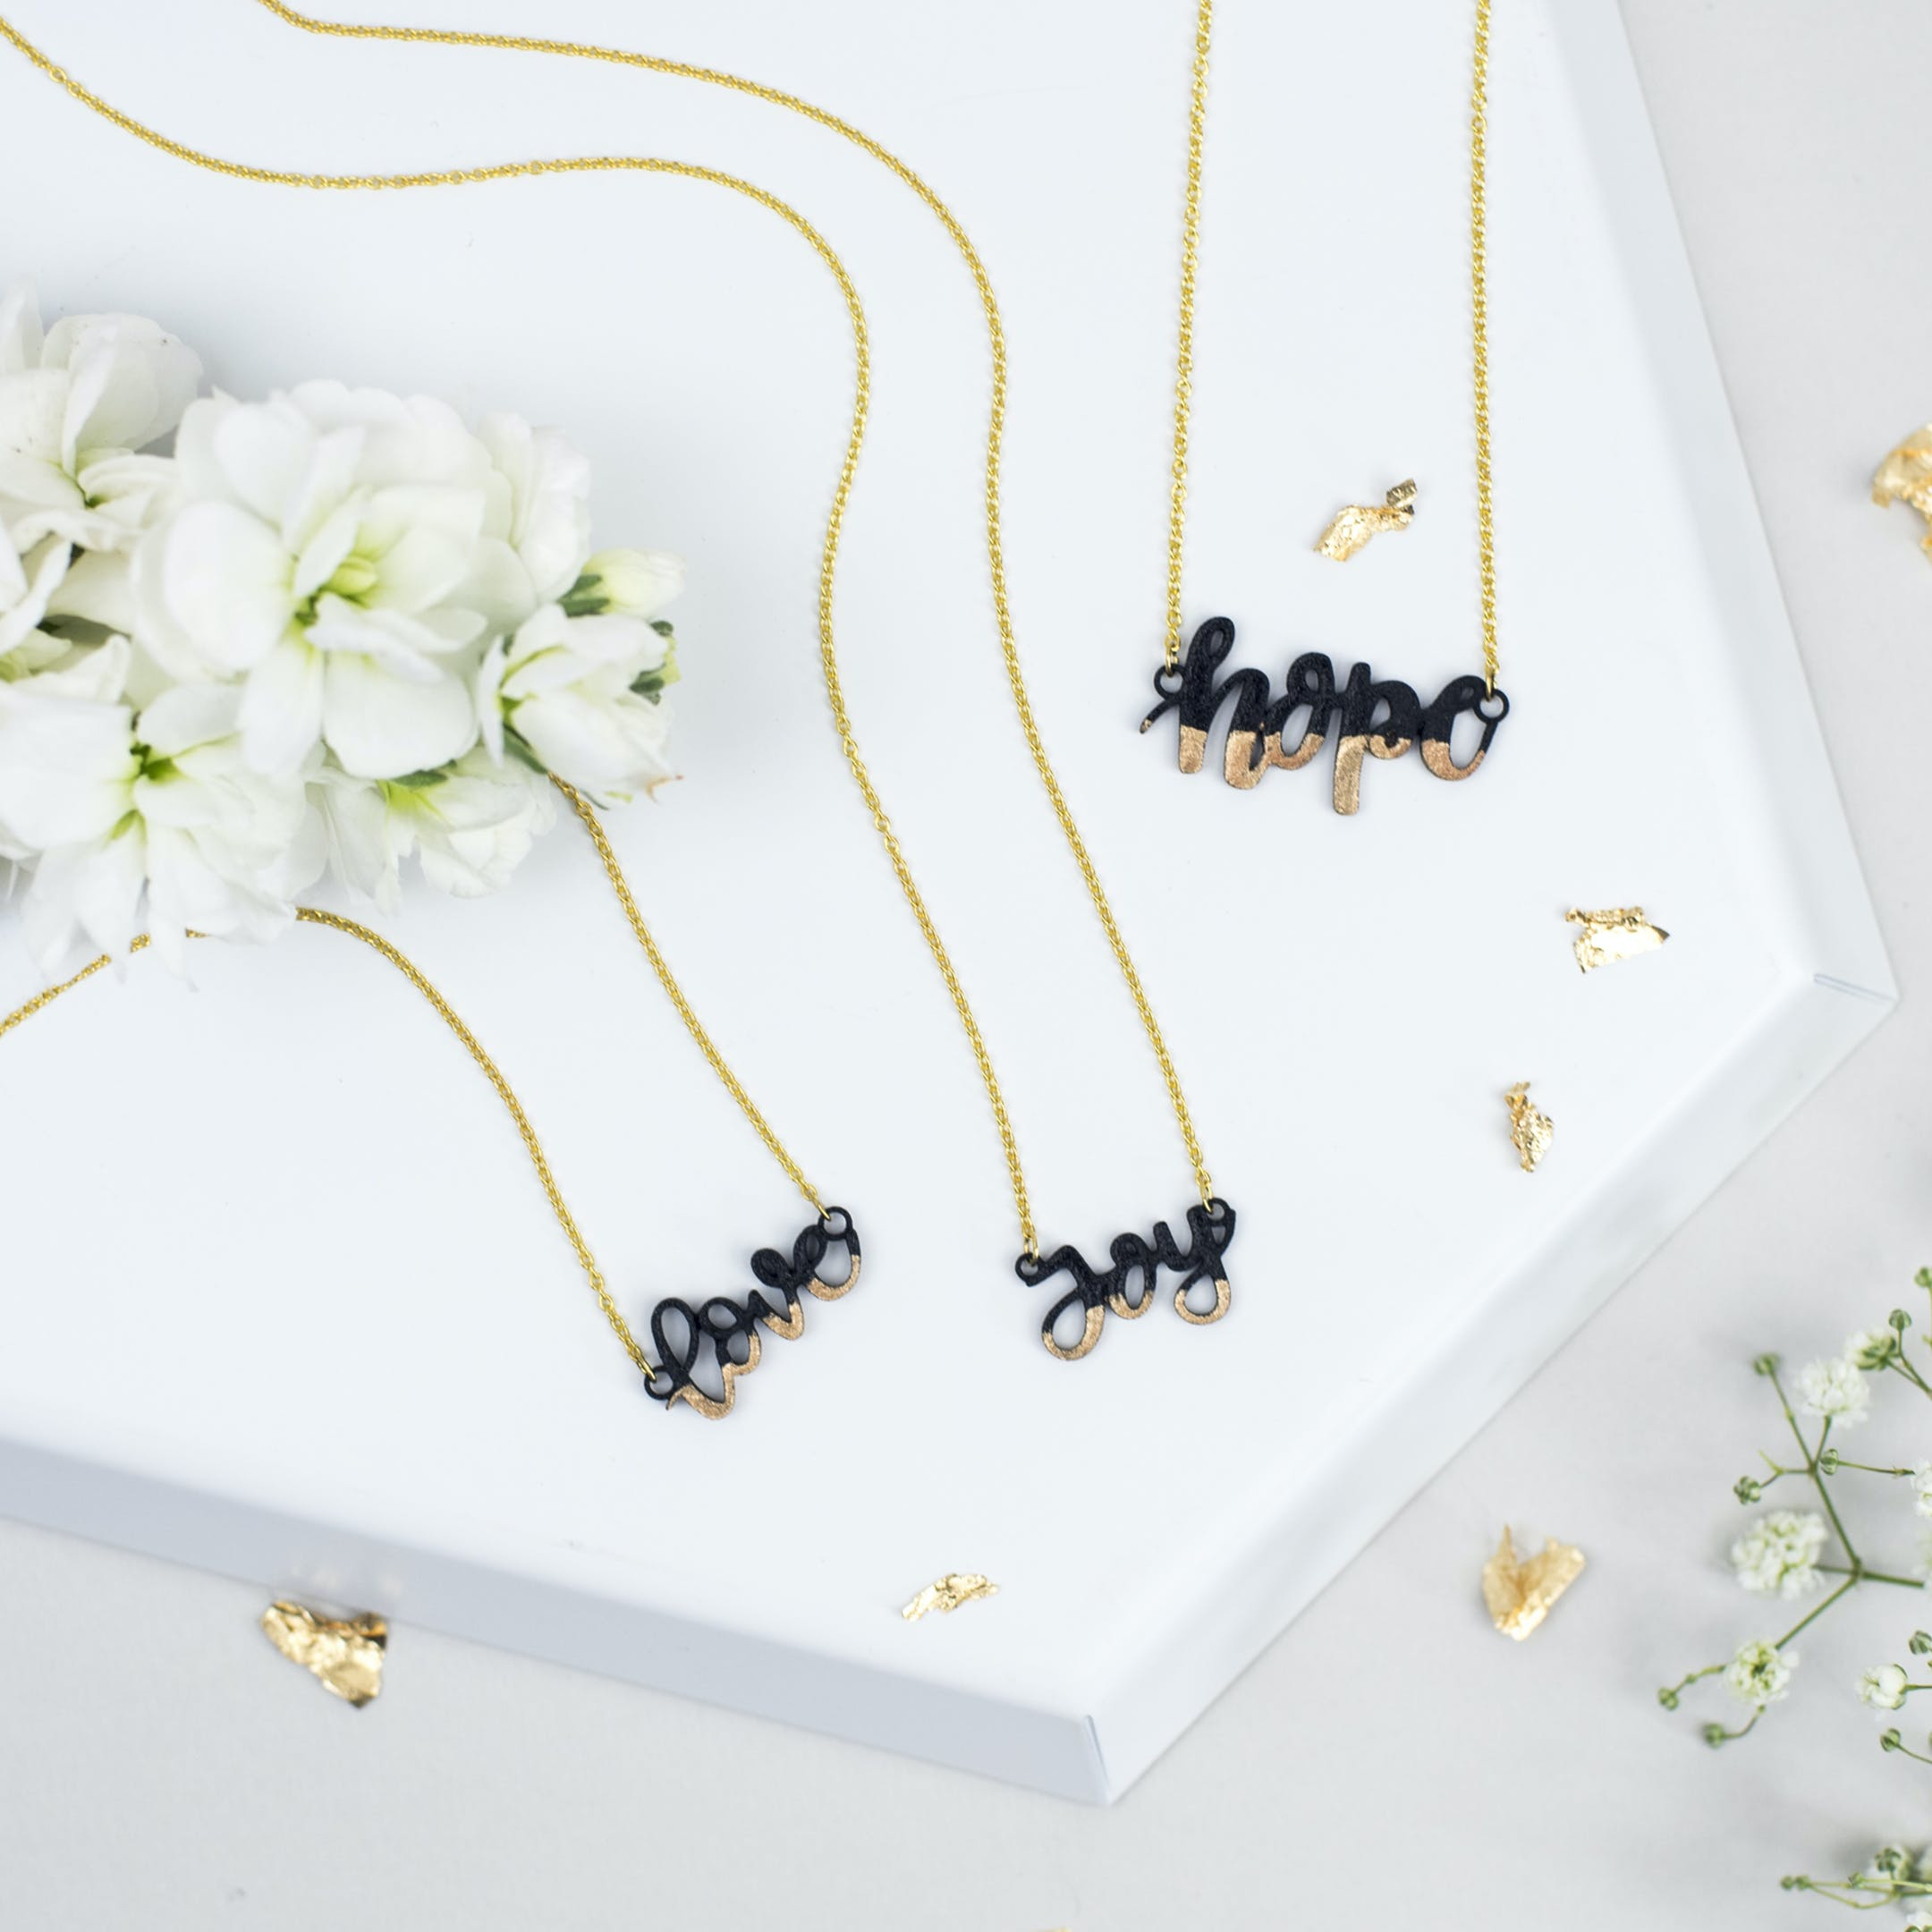 Gold-Dipped Love Joy Hope Necklaces - Izzy and Pop - Bloom Jewellery